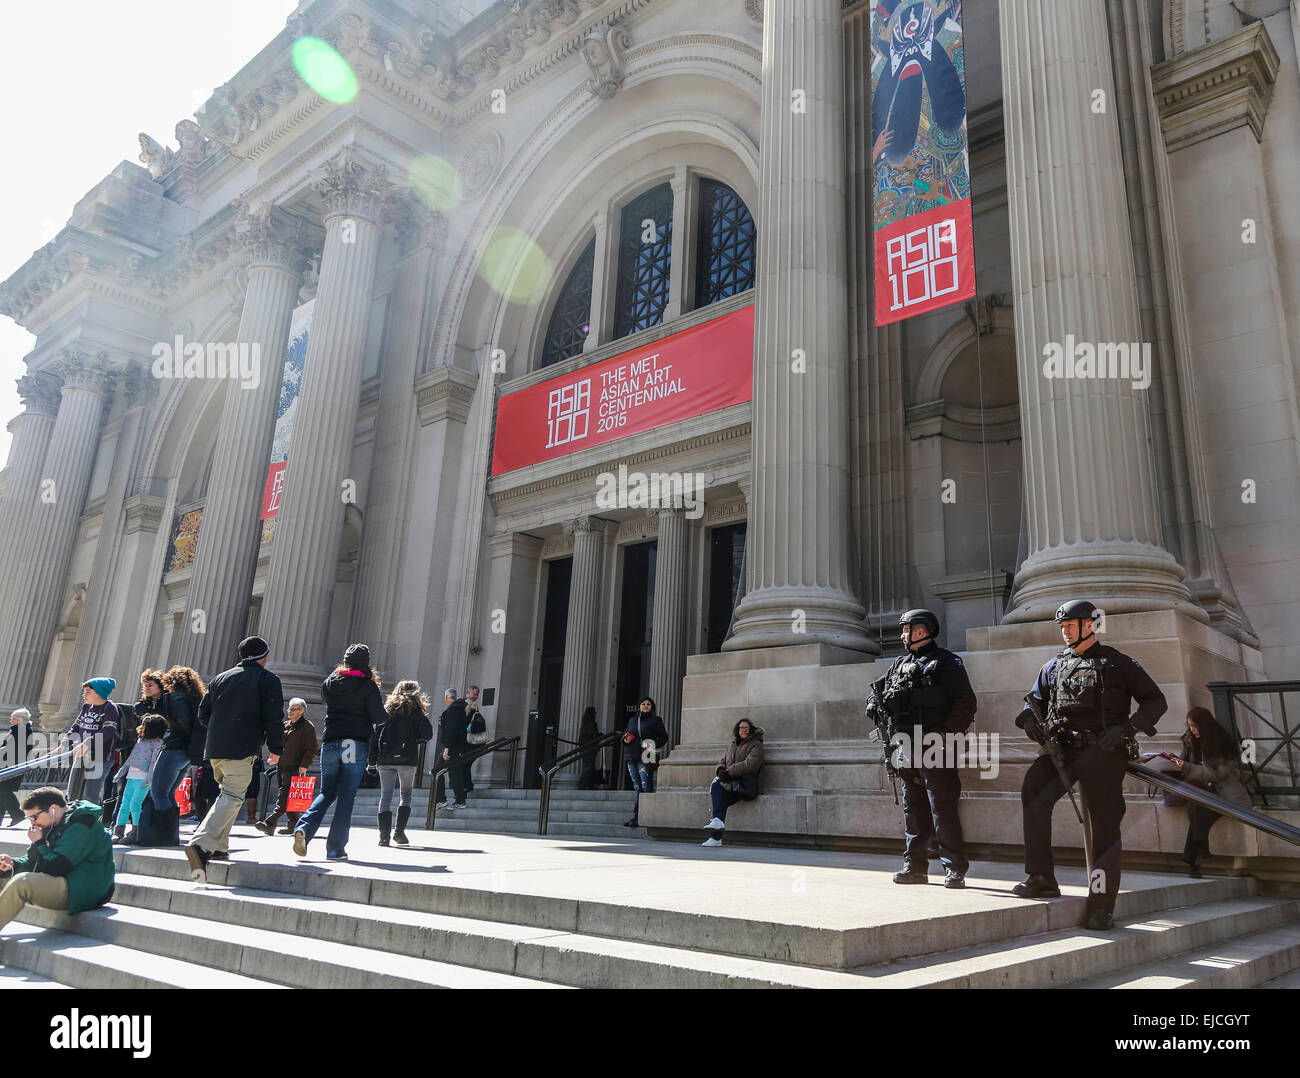 armed anti-terrorist guards on duty, Metropolitan Museum of Art, New York, USA - Stock Image